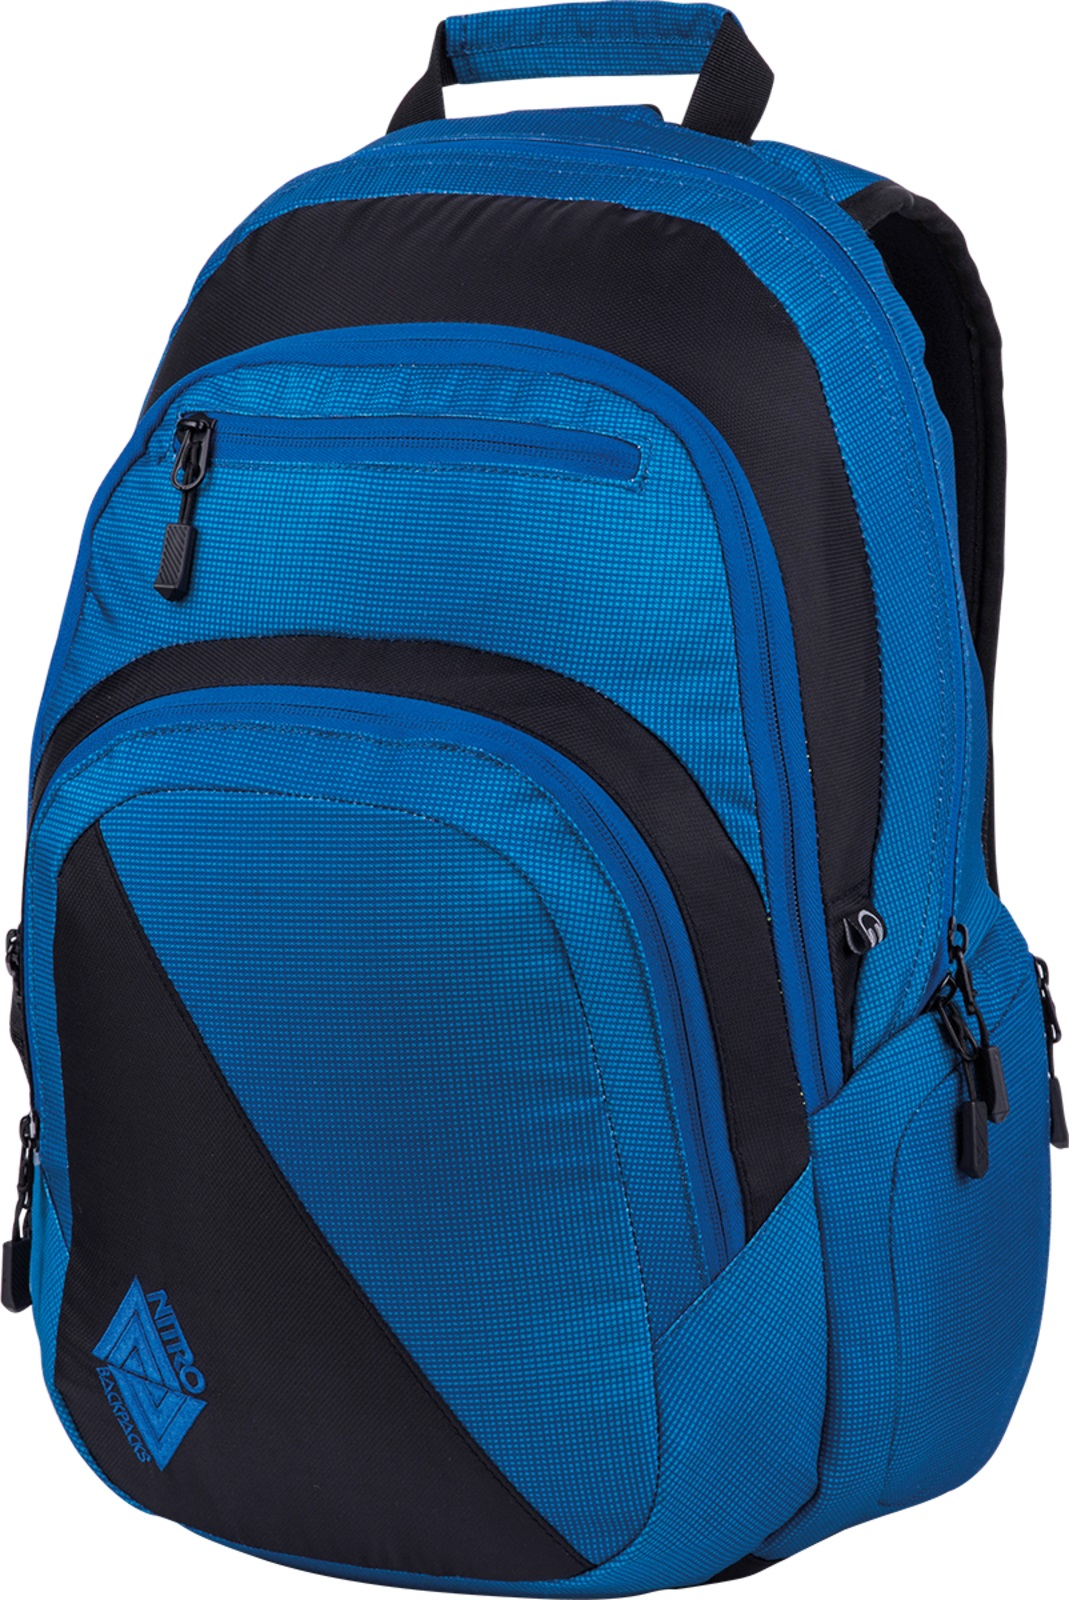 Nitro batoh Stash blur brilliant blue 27l